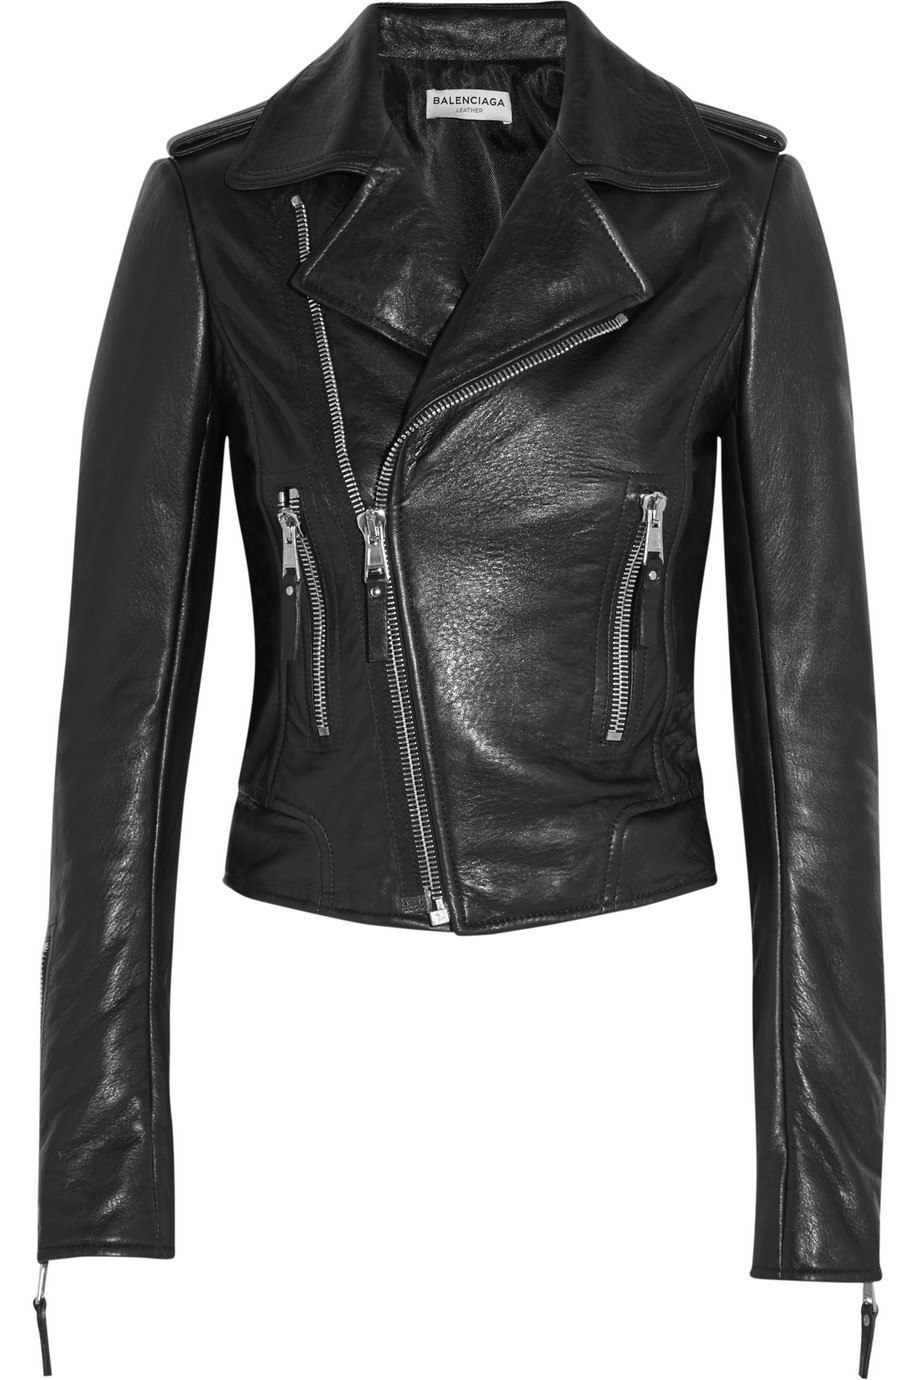 Balenciaga Textured-Leather Biker Jacket, Black, Women's, Size: 38